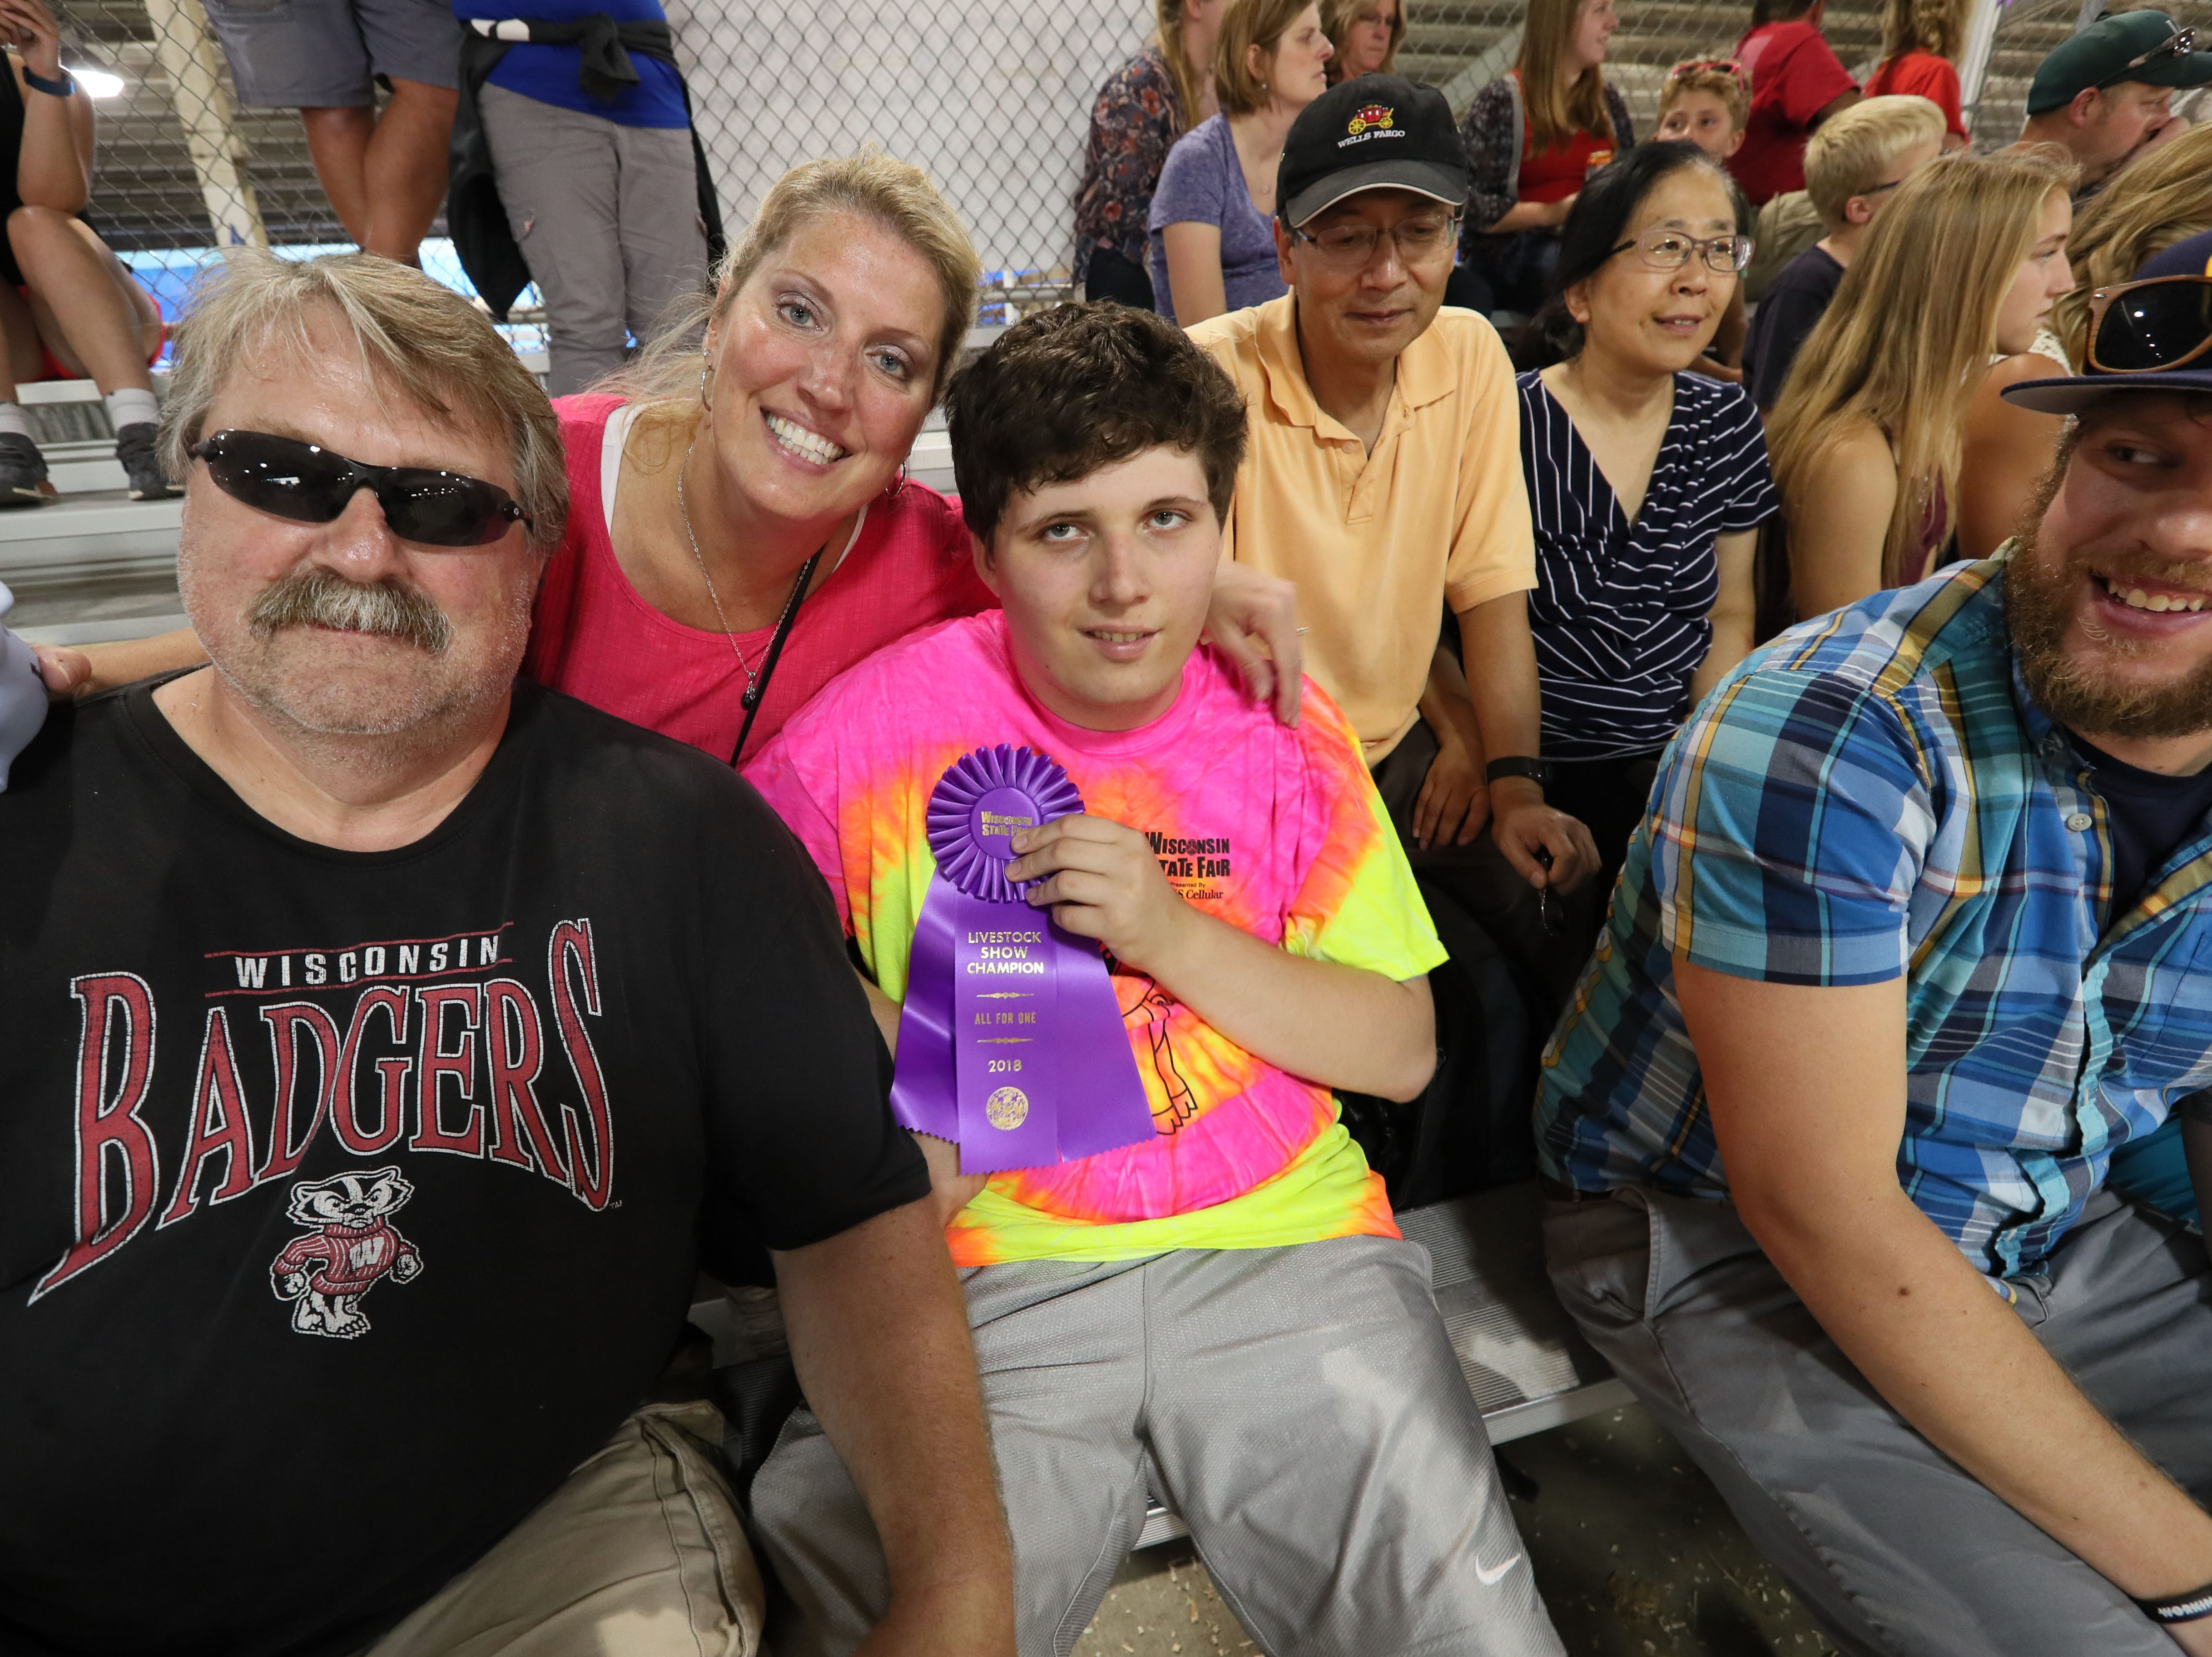 Clint Kuri (left)  and his wife Kathy Kuri (center) of Muskego, pose with their son Alex Kuri (right) age 17, who holds his award he won for his skill in showing a pig at Wisconsin State Fair. During the All for One Swine Show, youth with intellectual disabilities could show a pig with the help of experienced mentors.